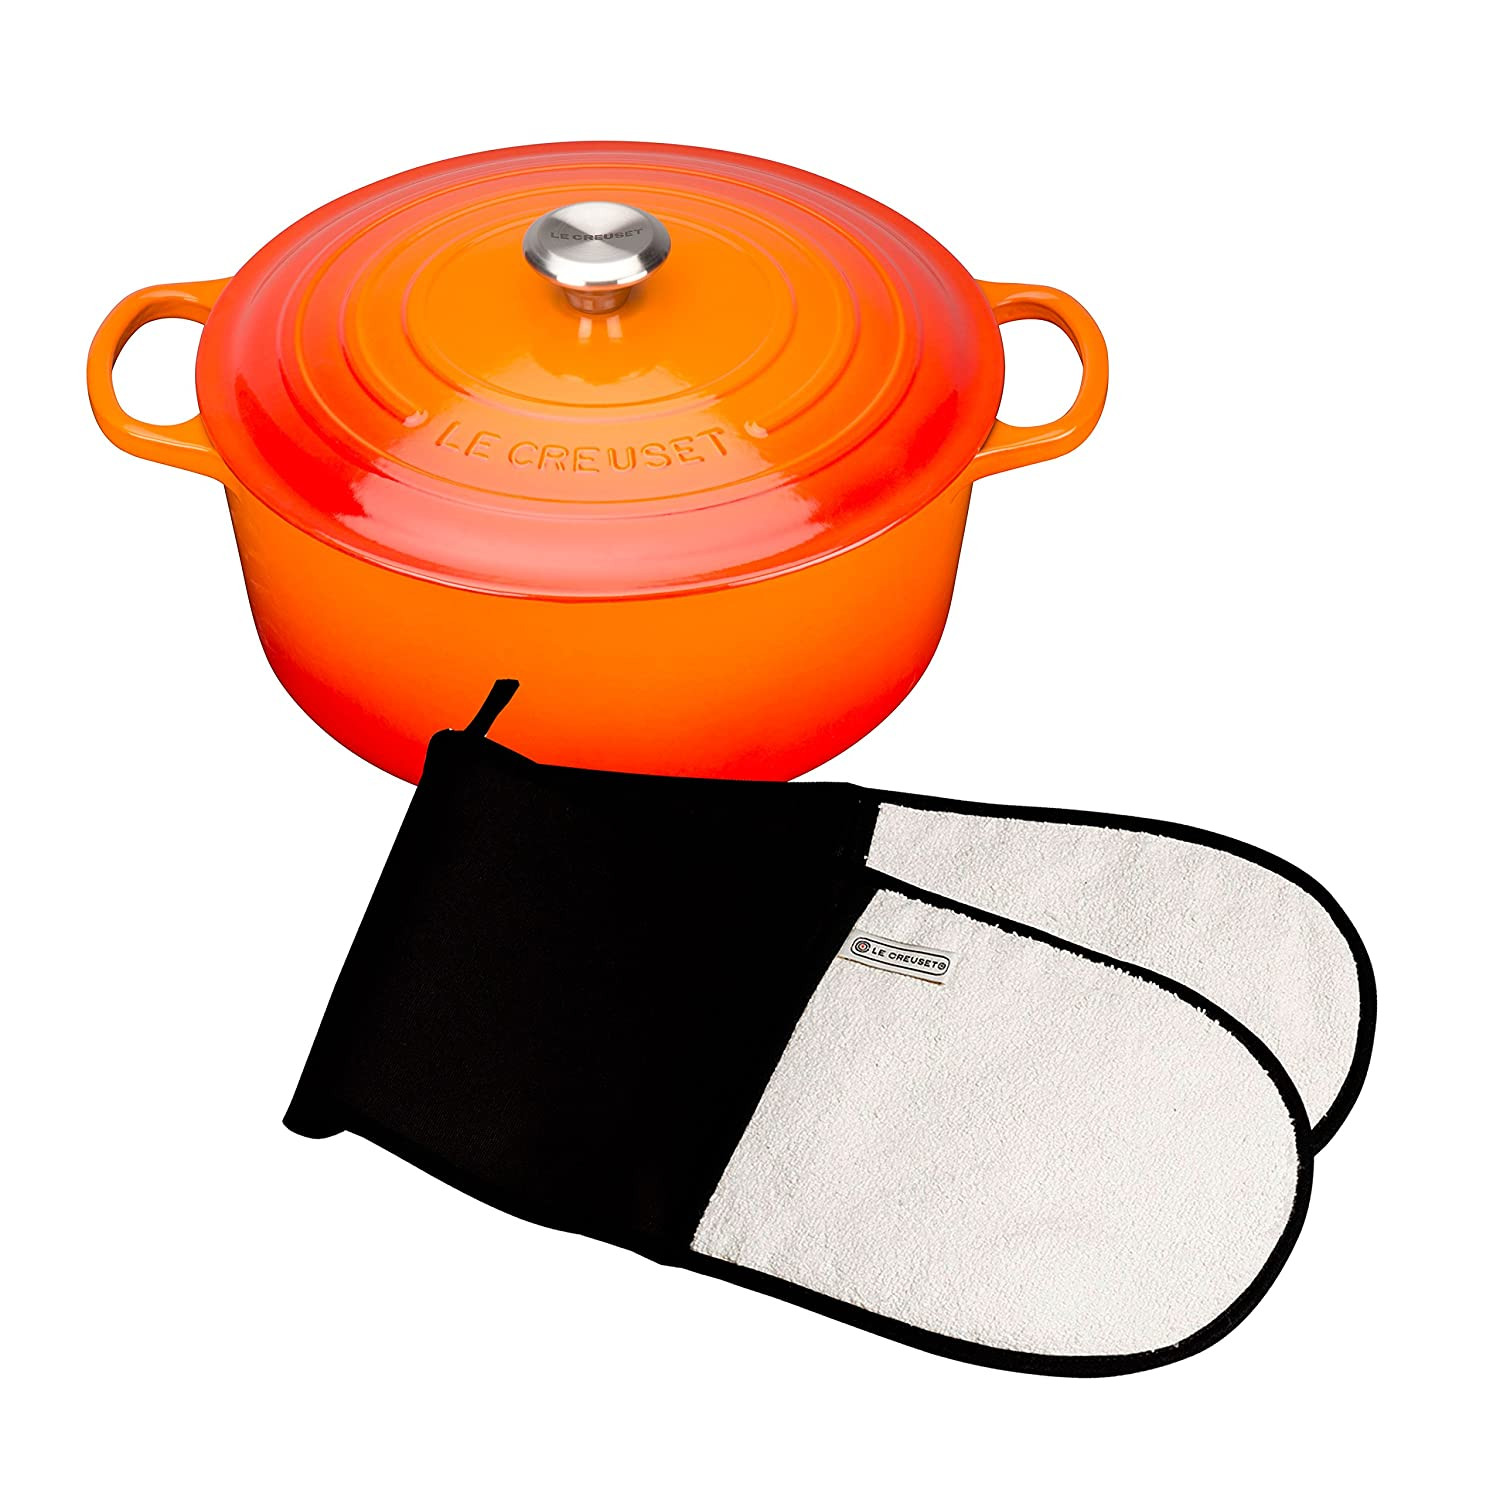 Le Creuset Signature Cast Iron Round Casserole, 18 cm - Almond with Cooling Tool